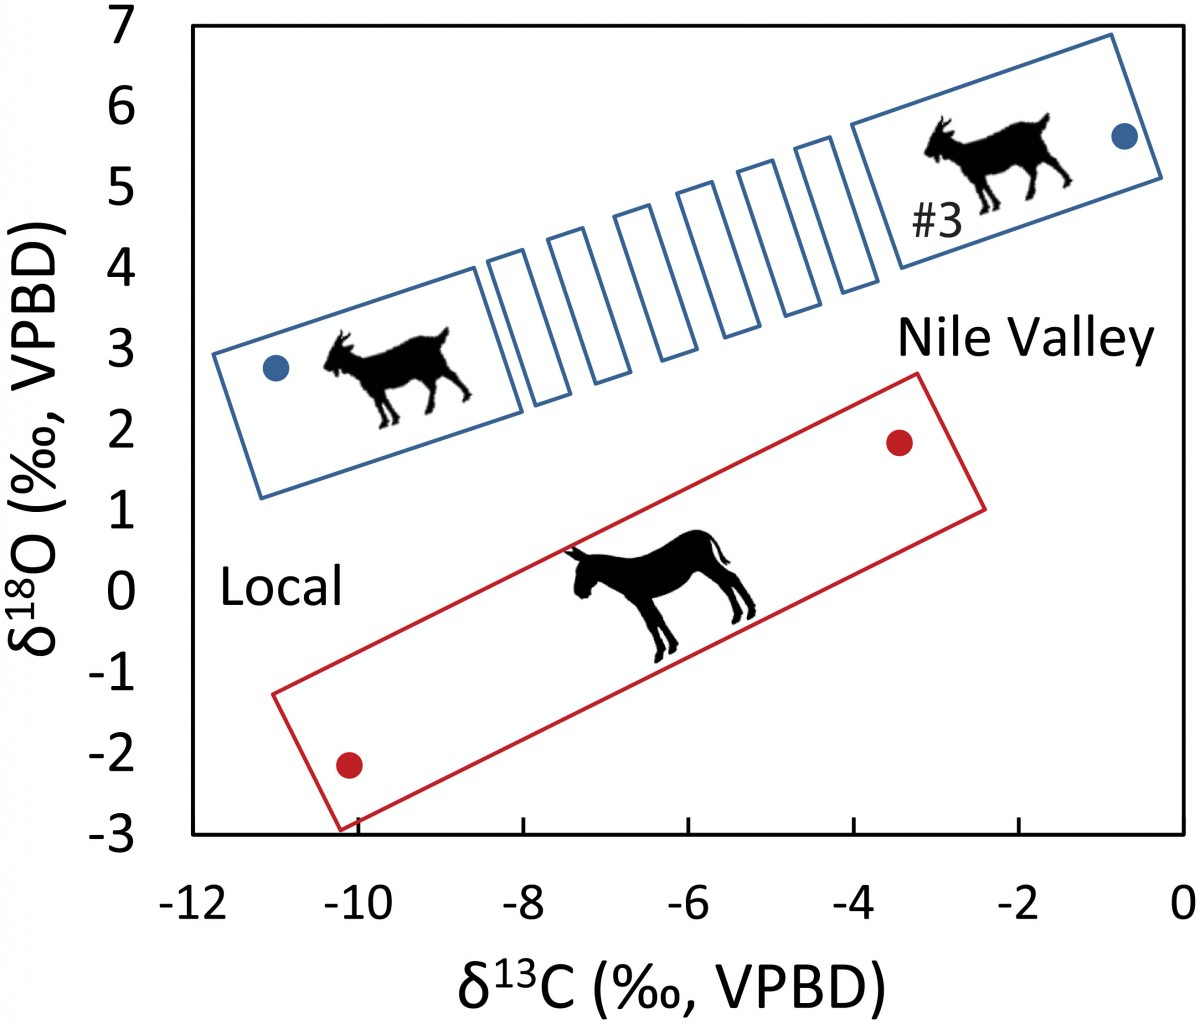 Local vs. Nile valley bivariate plotting of mean intra (ass; red frame) and inter-tooth (ovicaprine; dashed blue frame) δ18O and δ13C values. Image Credit: PLOS One.